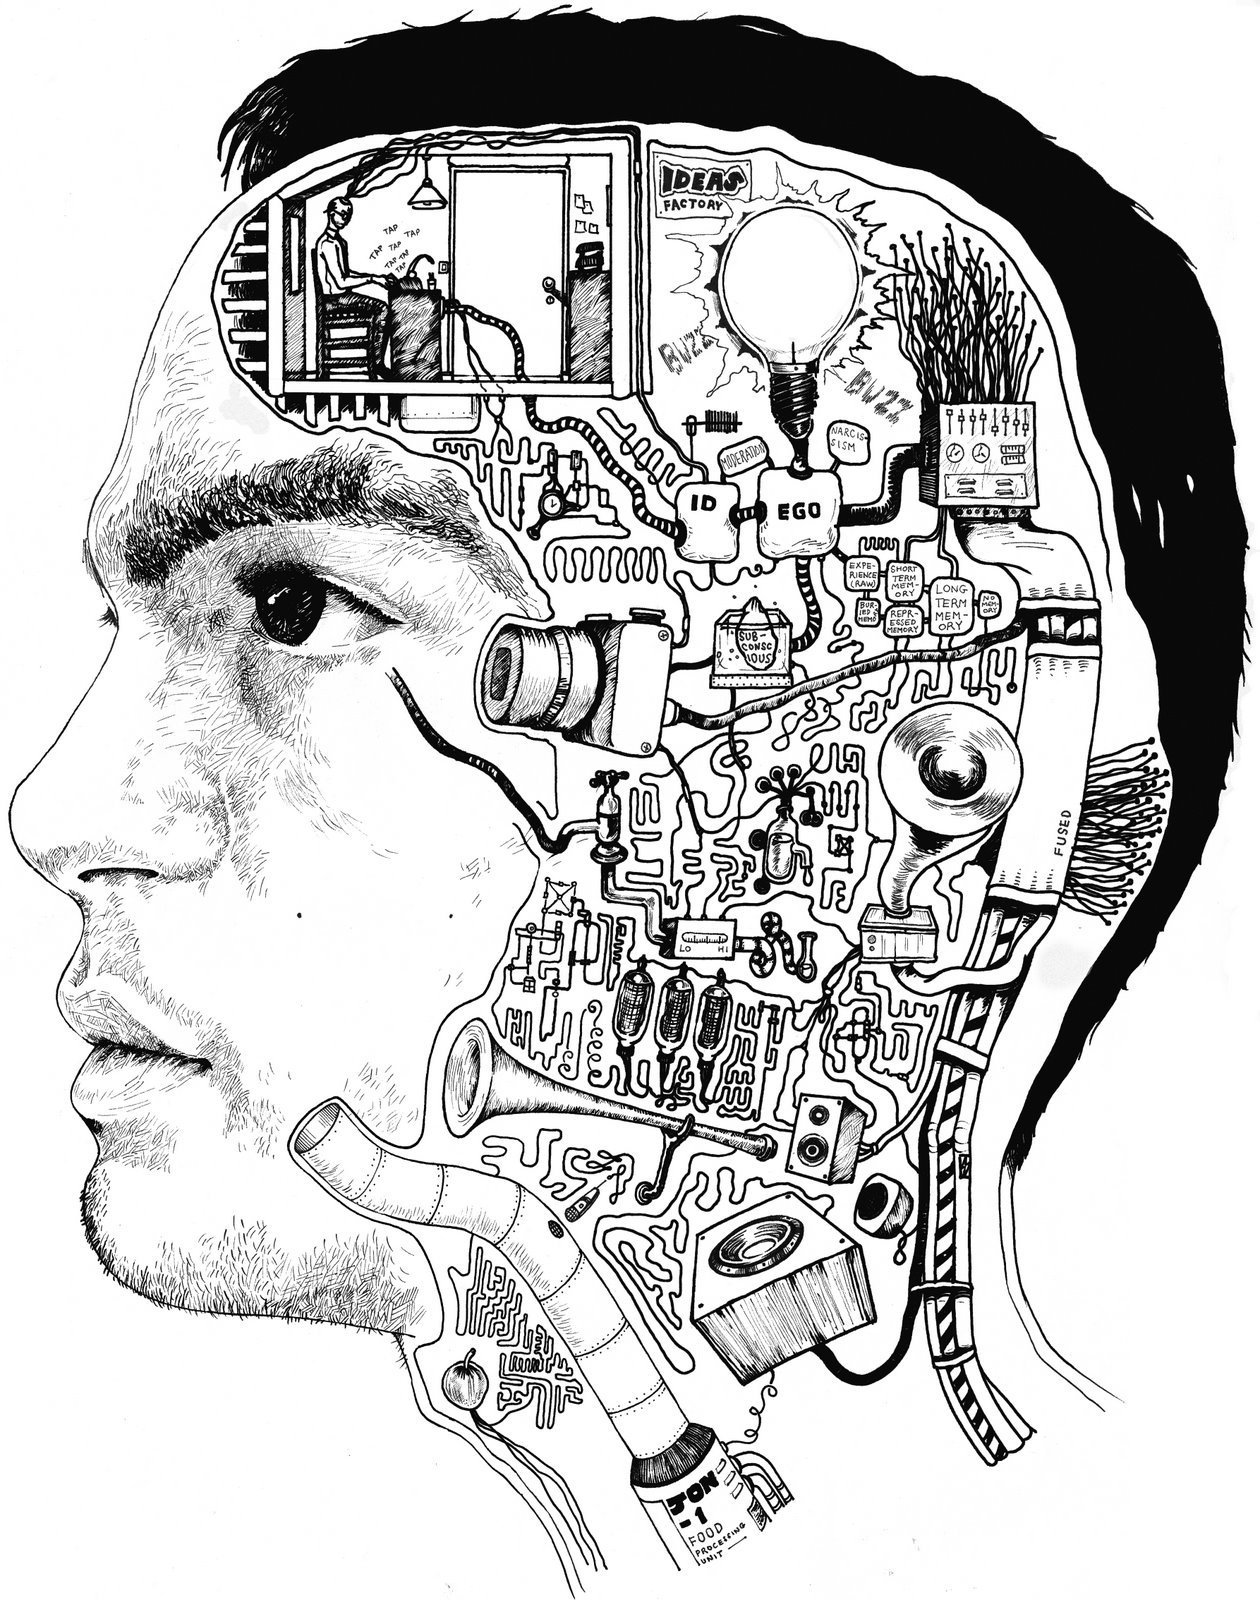 What's going on inside an investor's head